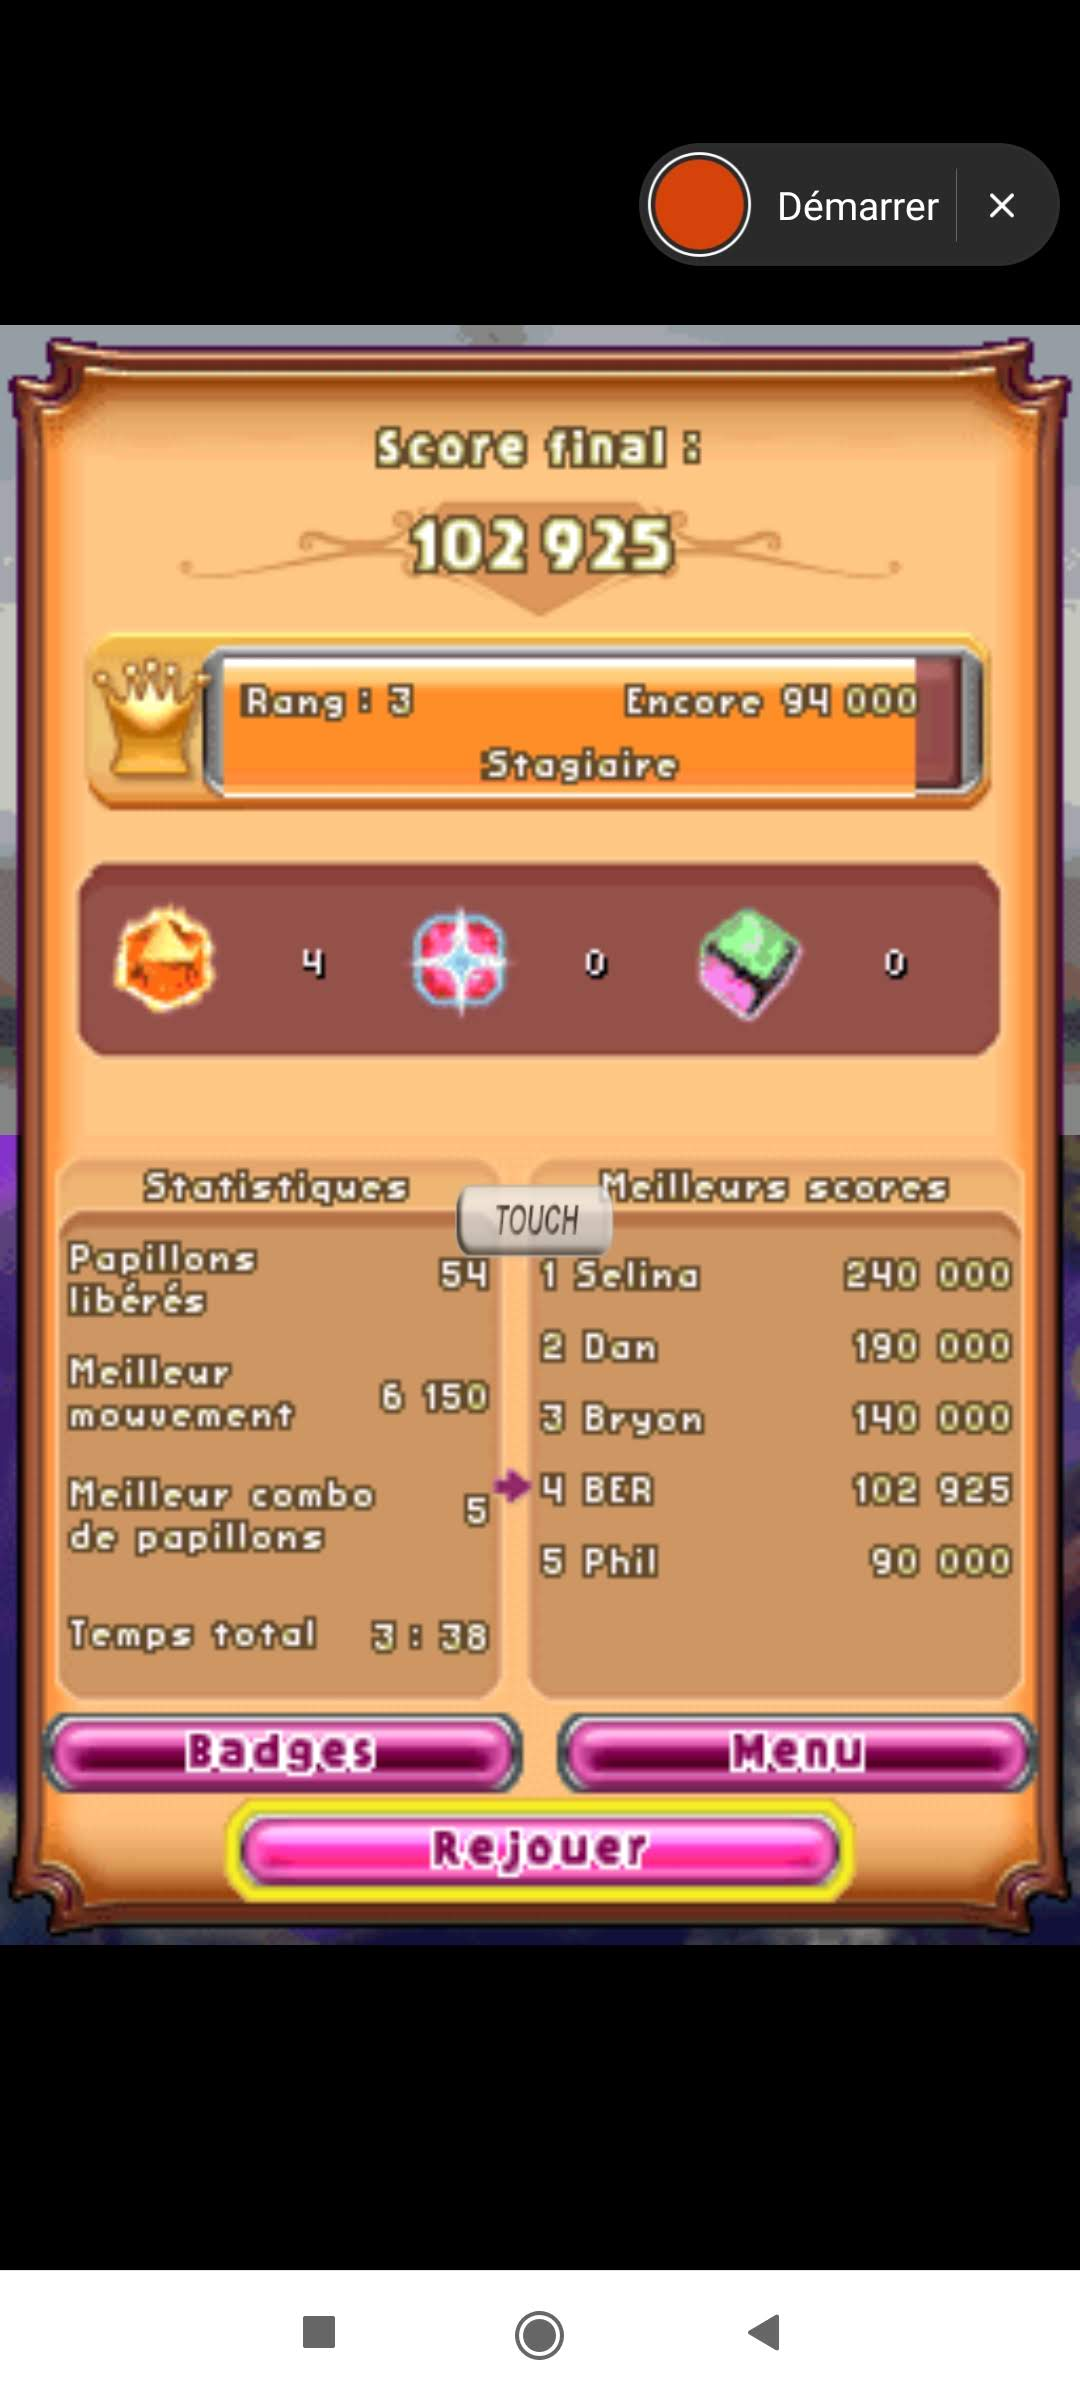 Larquey: Bejeweled 3: Butterflies [Number of Star Gems] (Nintendo DS Emulated) 0 points on 2020-09-27 04:28:27